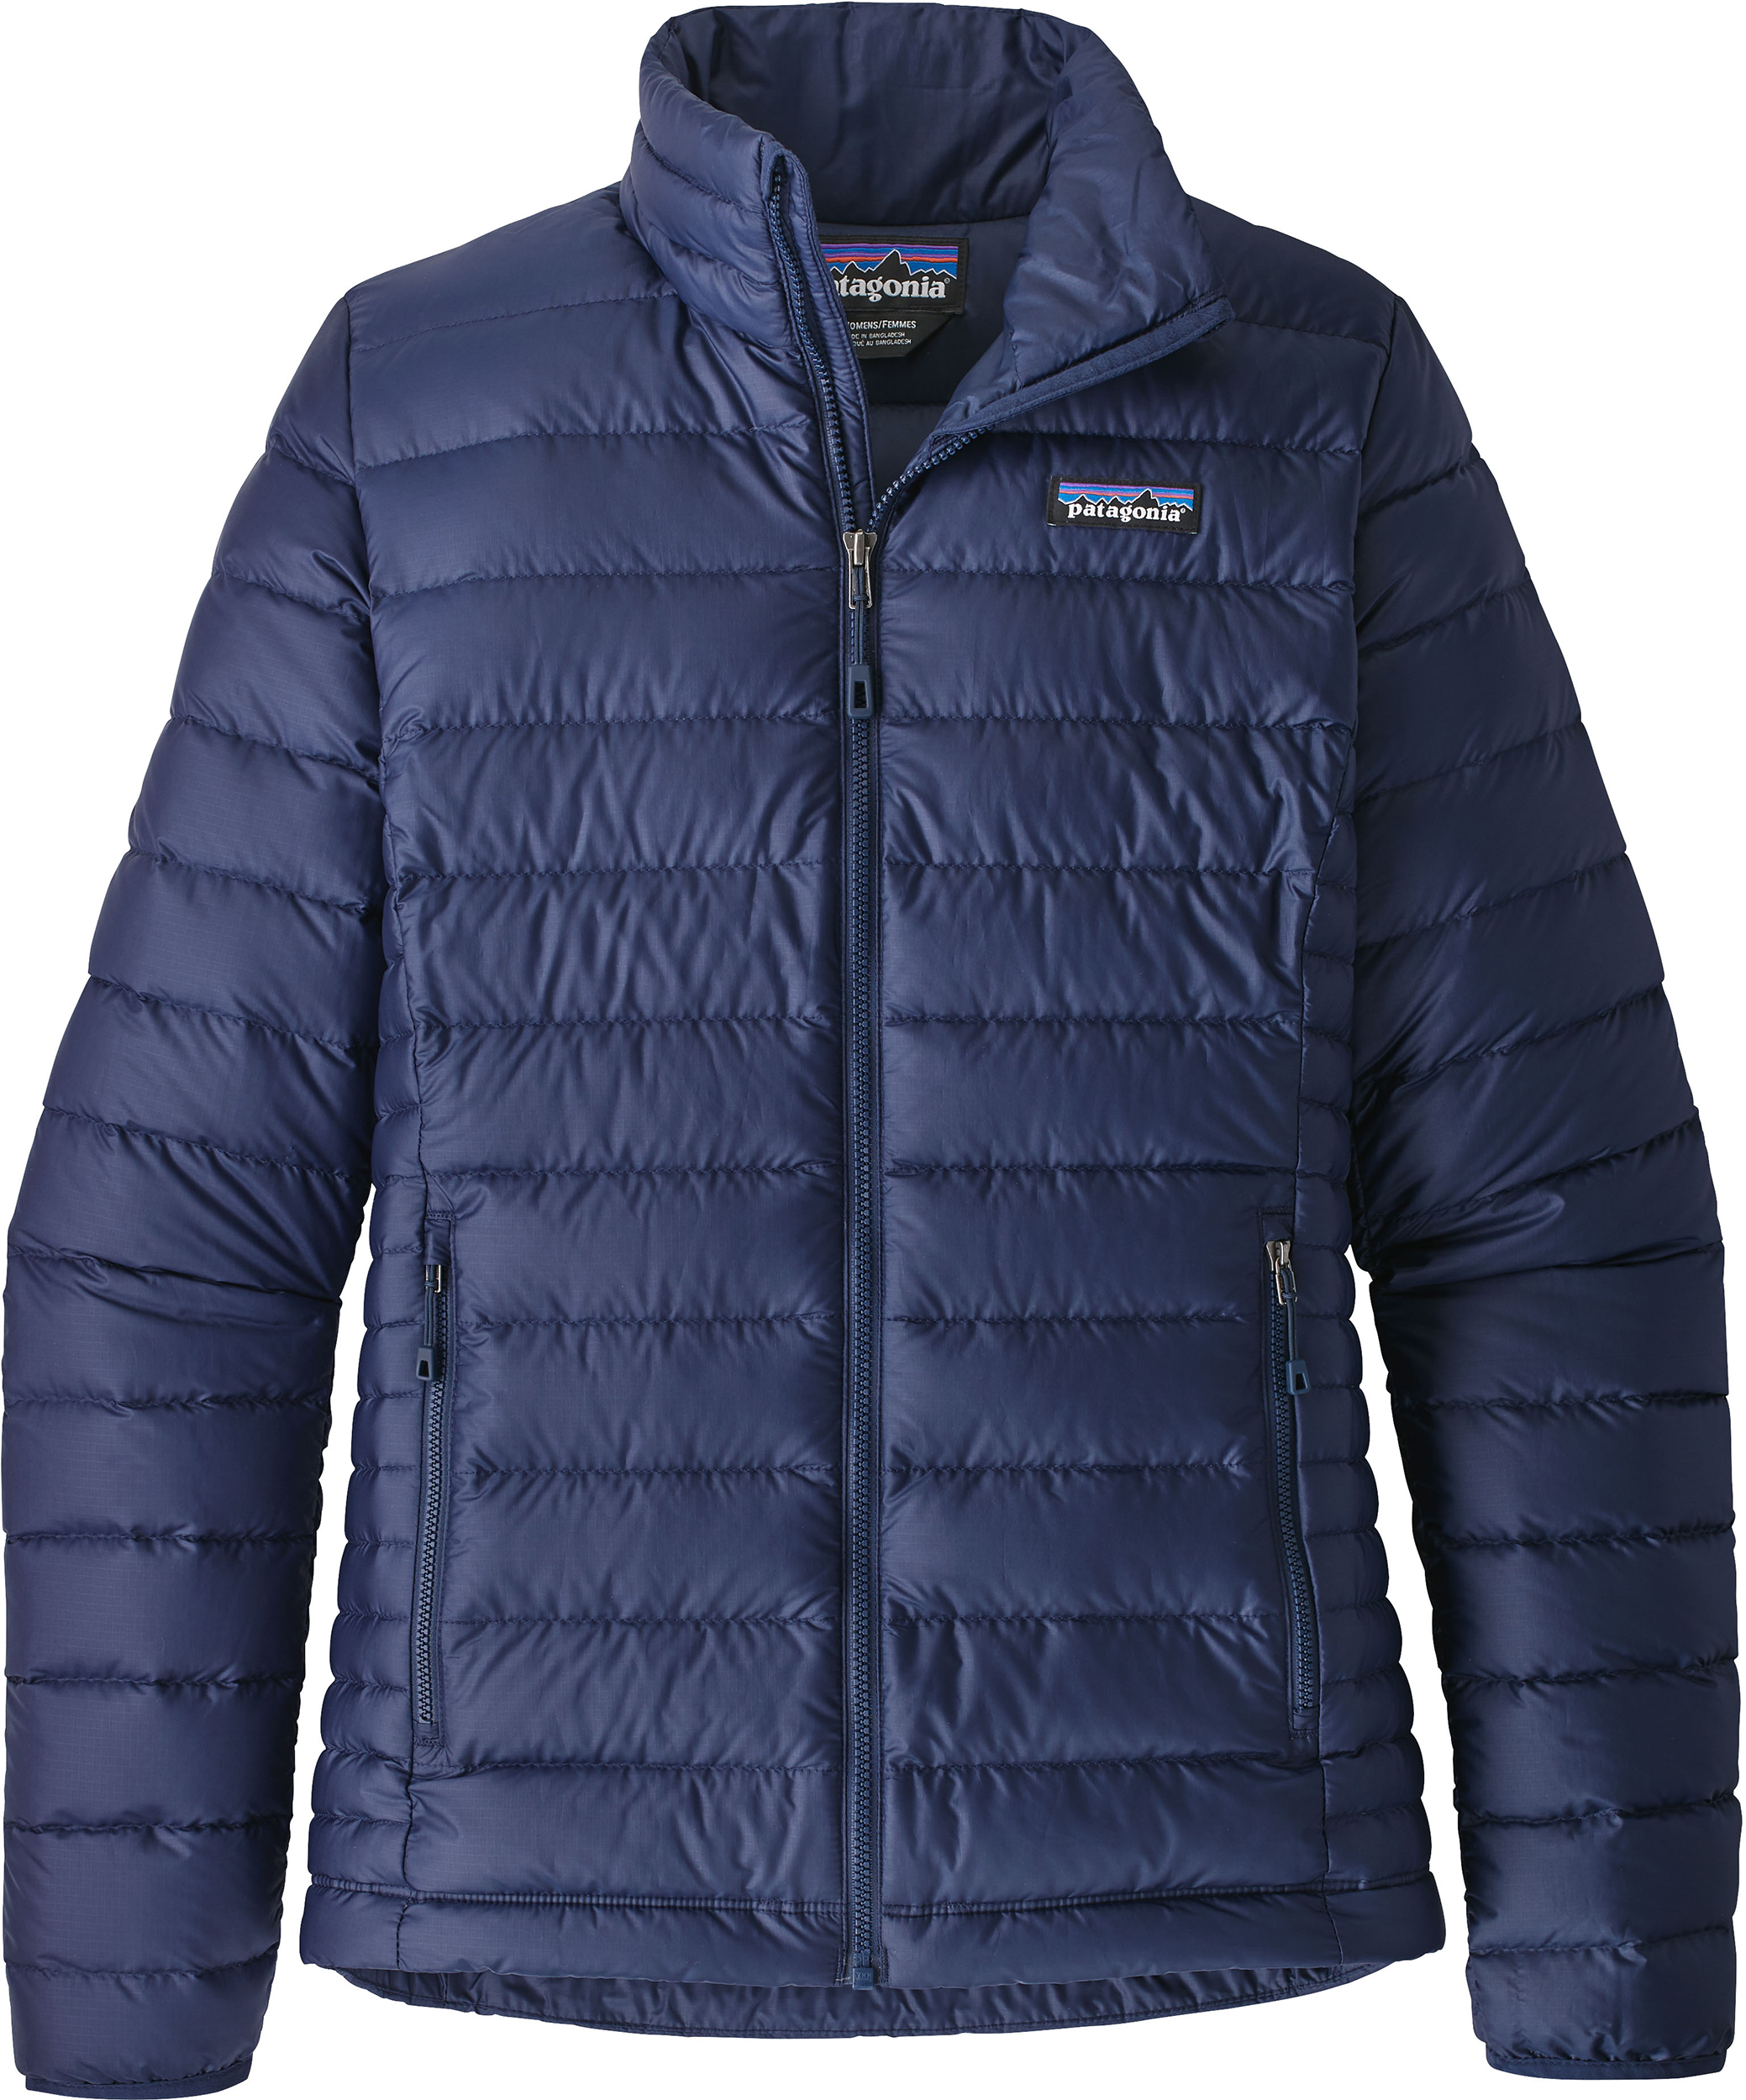 3b1c5d85f71e Patagonia All products